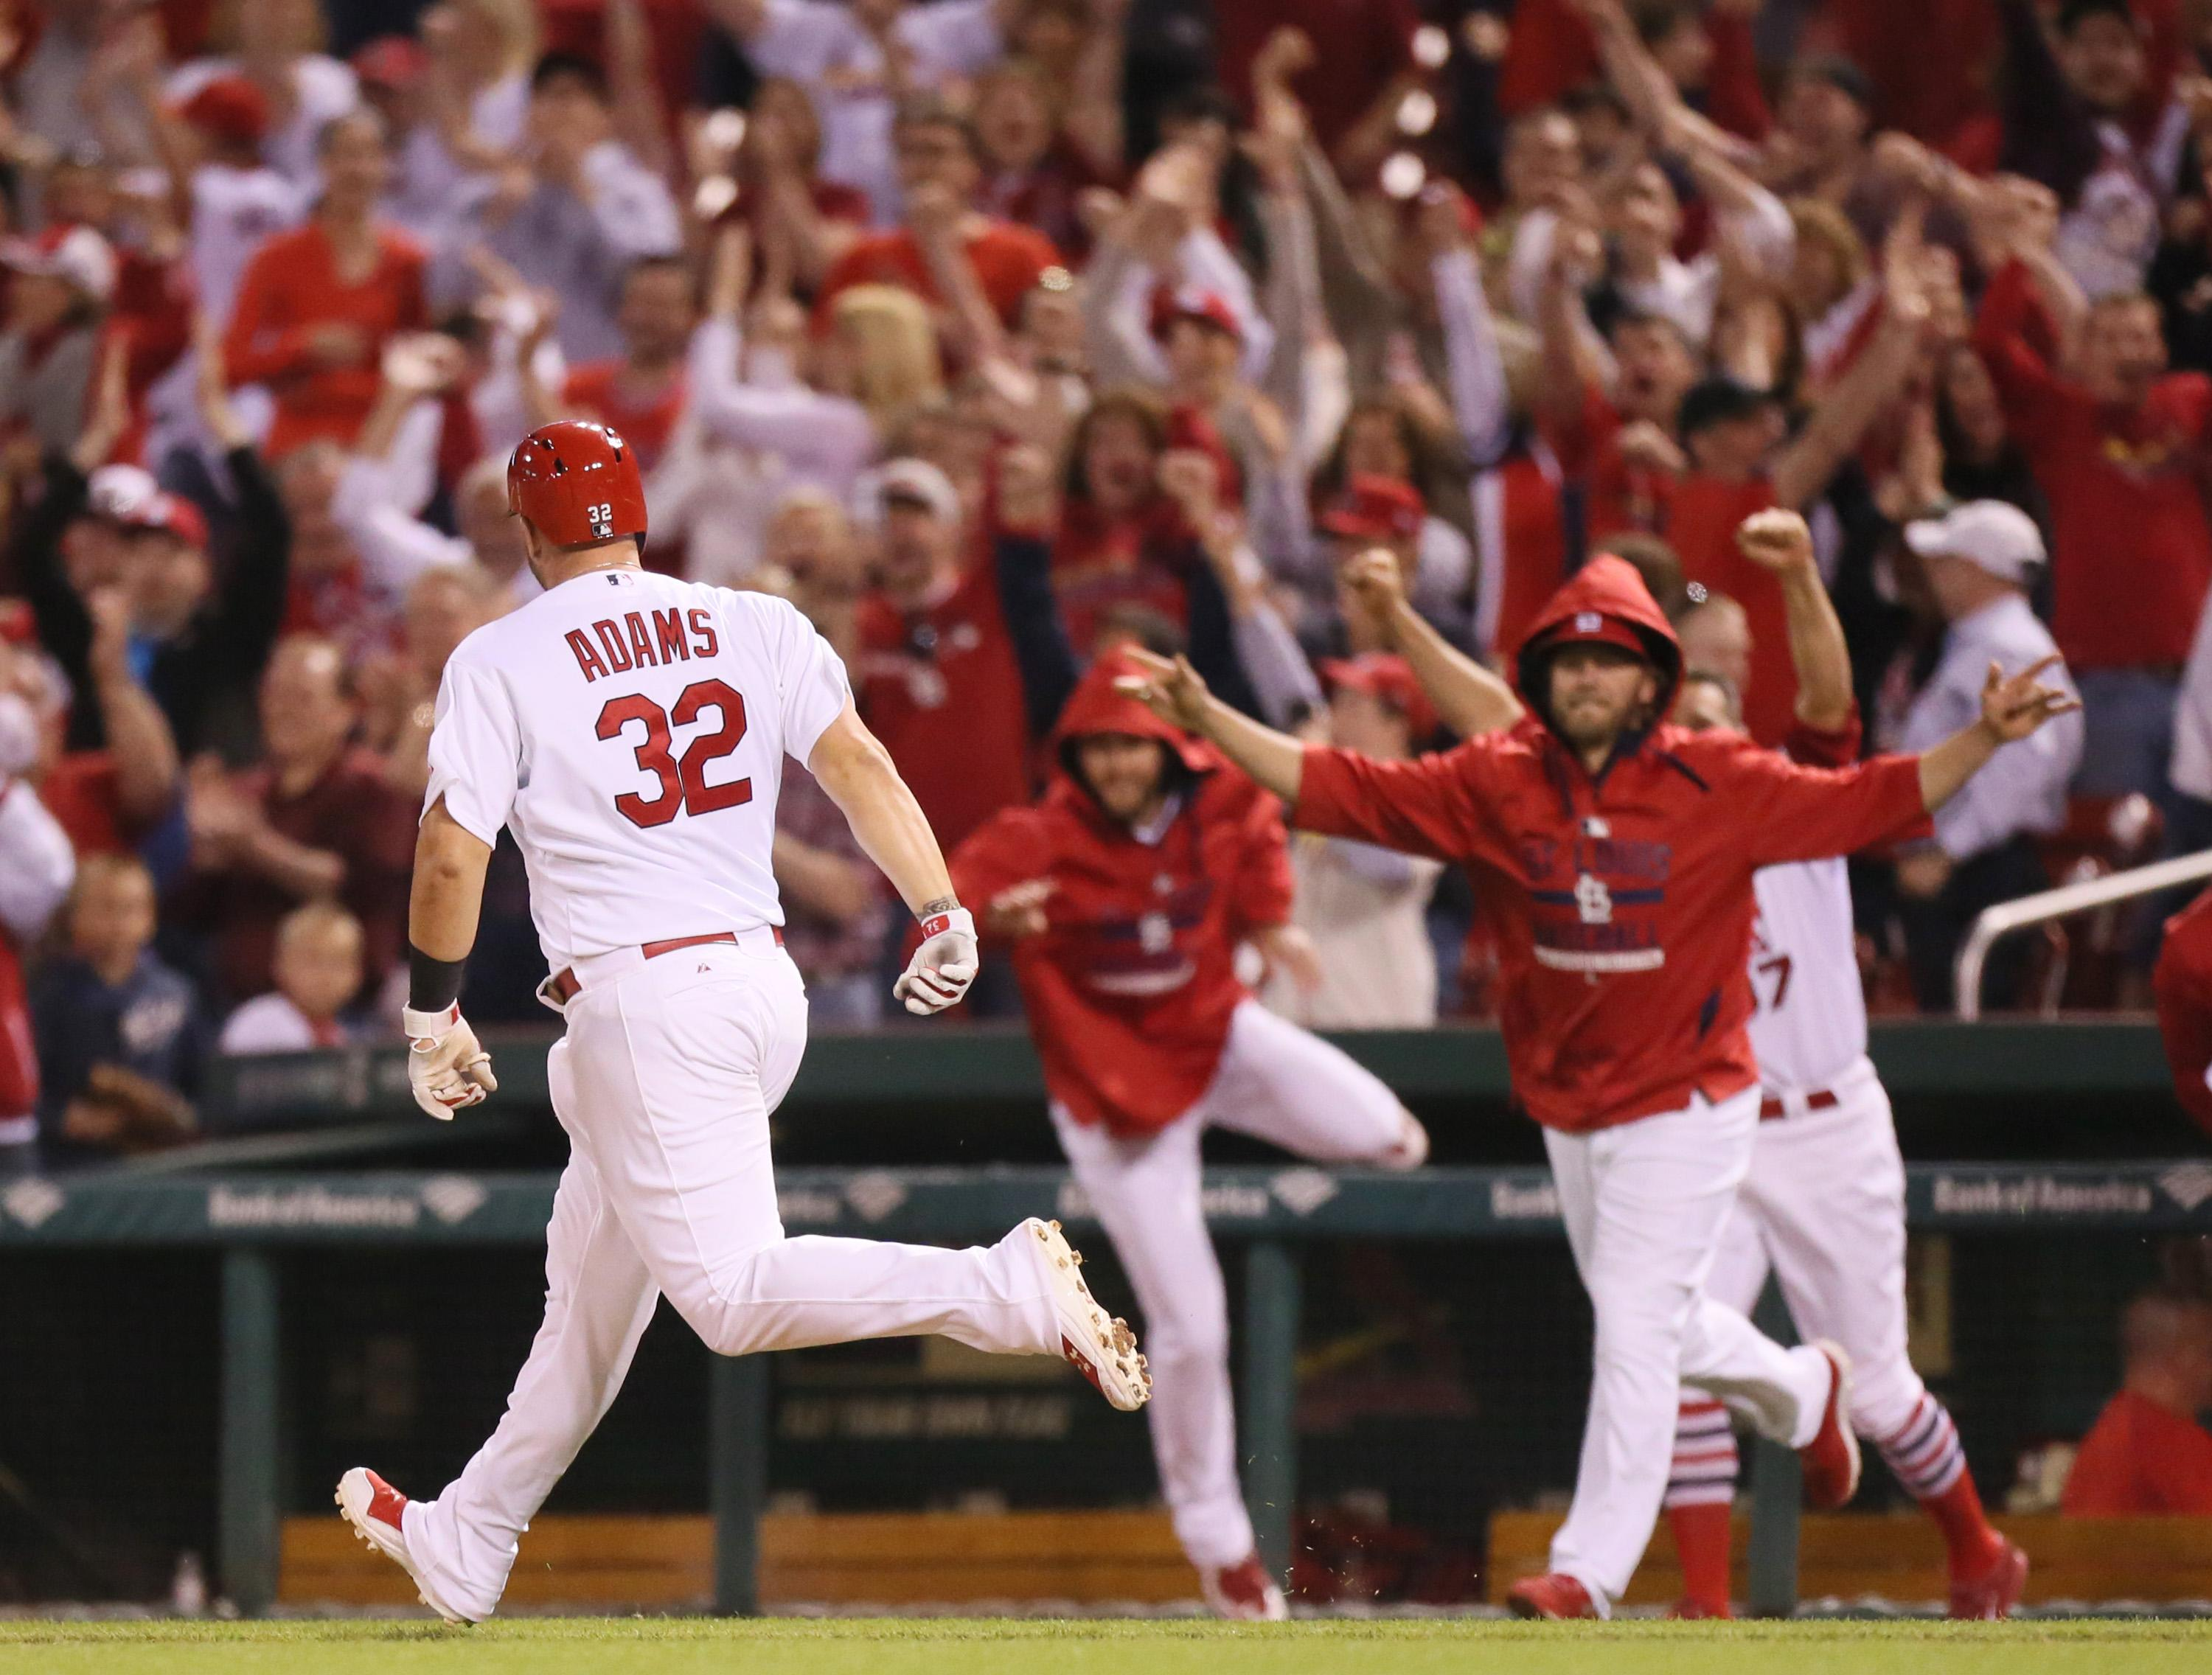 Adams gives Cardinals 2-1 win over Pirates in 10 innings